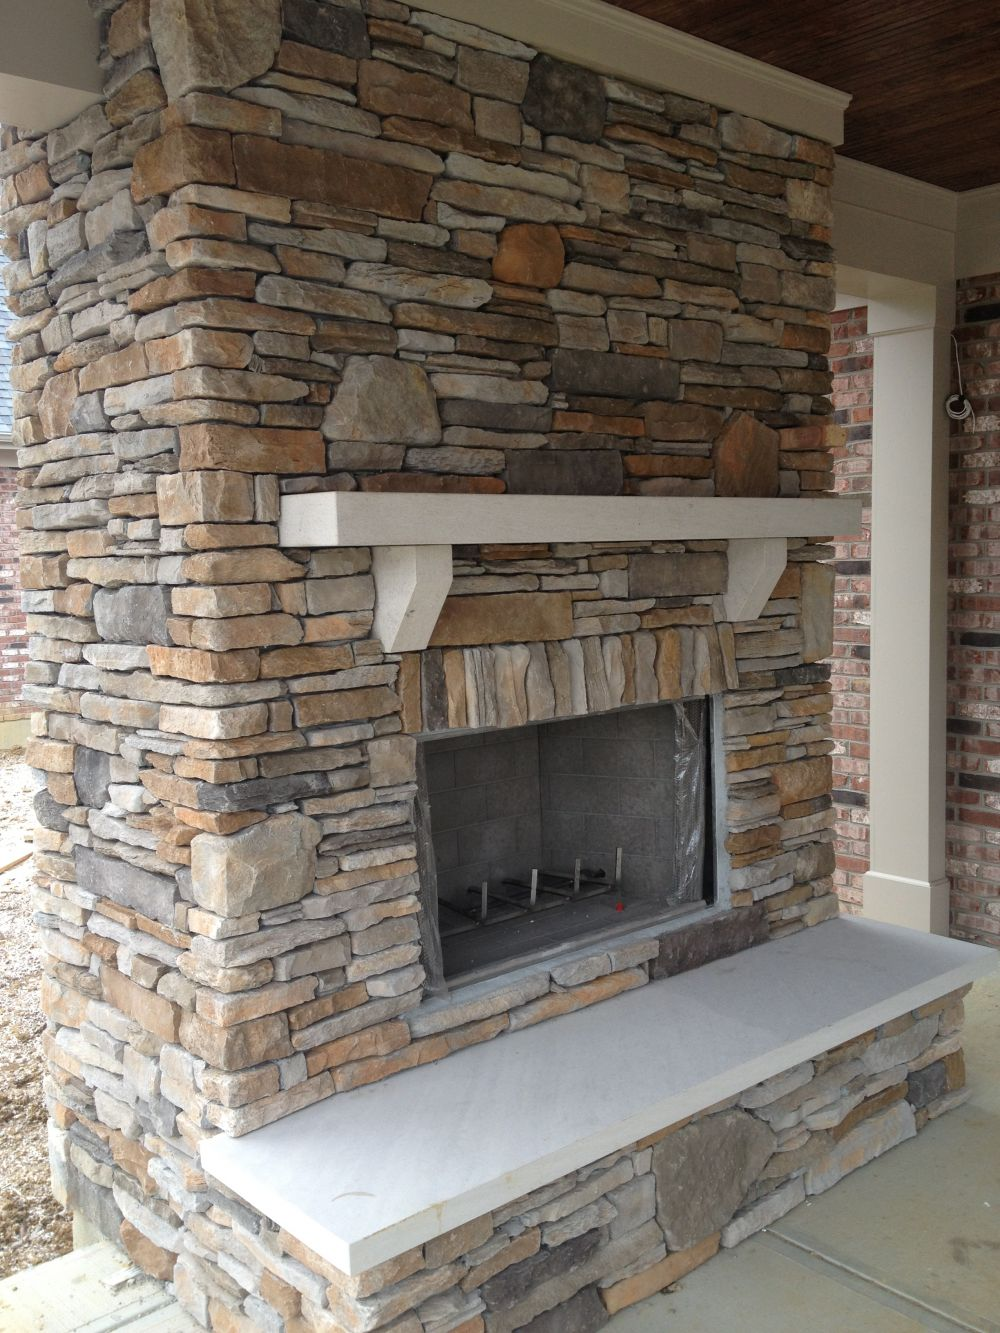 Cultured Stone - interior view of work